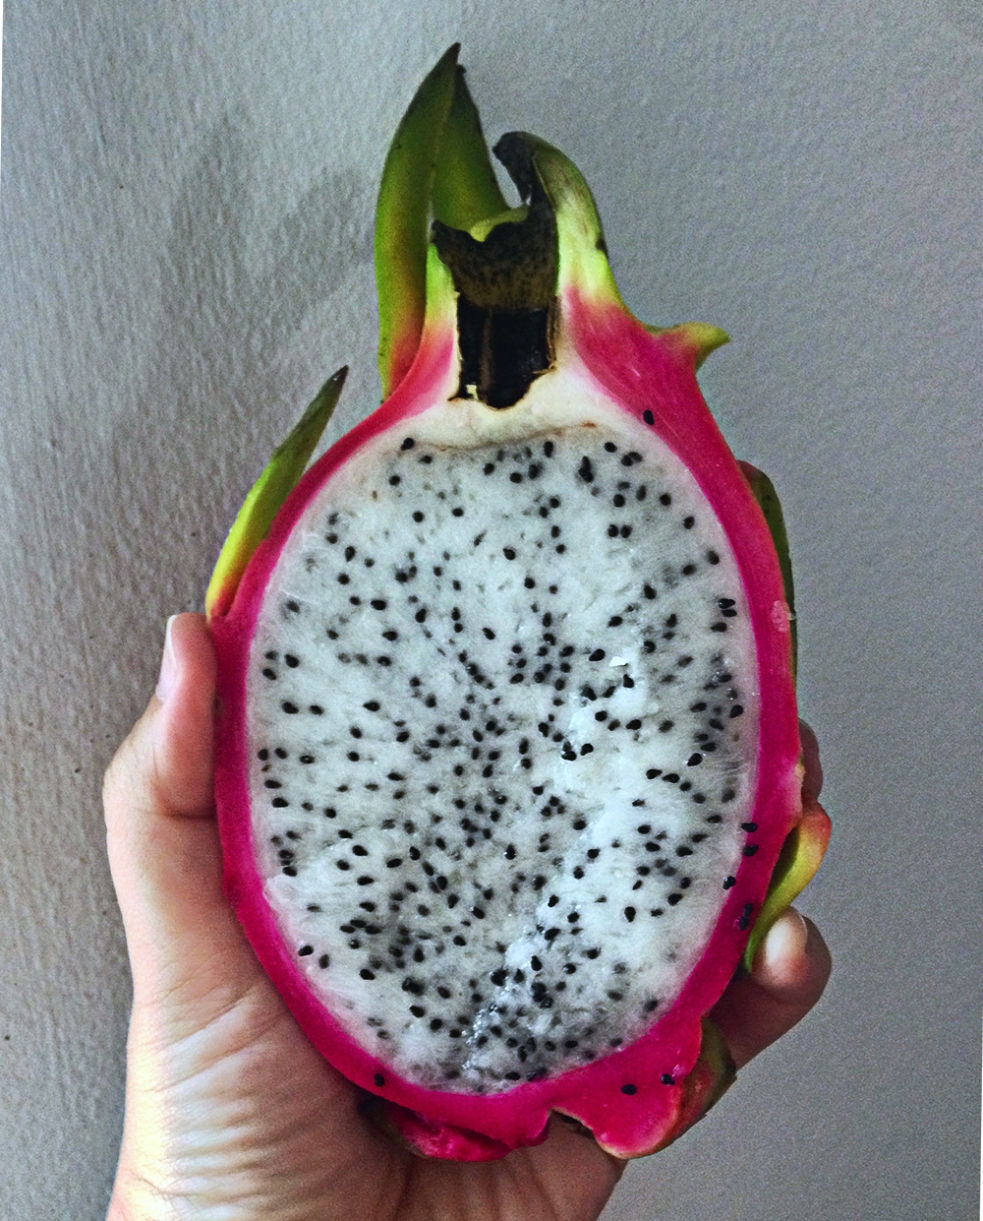 Pitajaya o dragon fruit